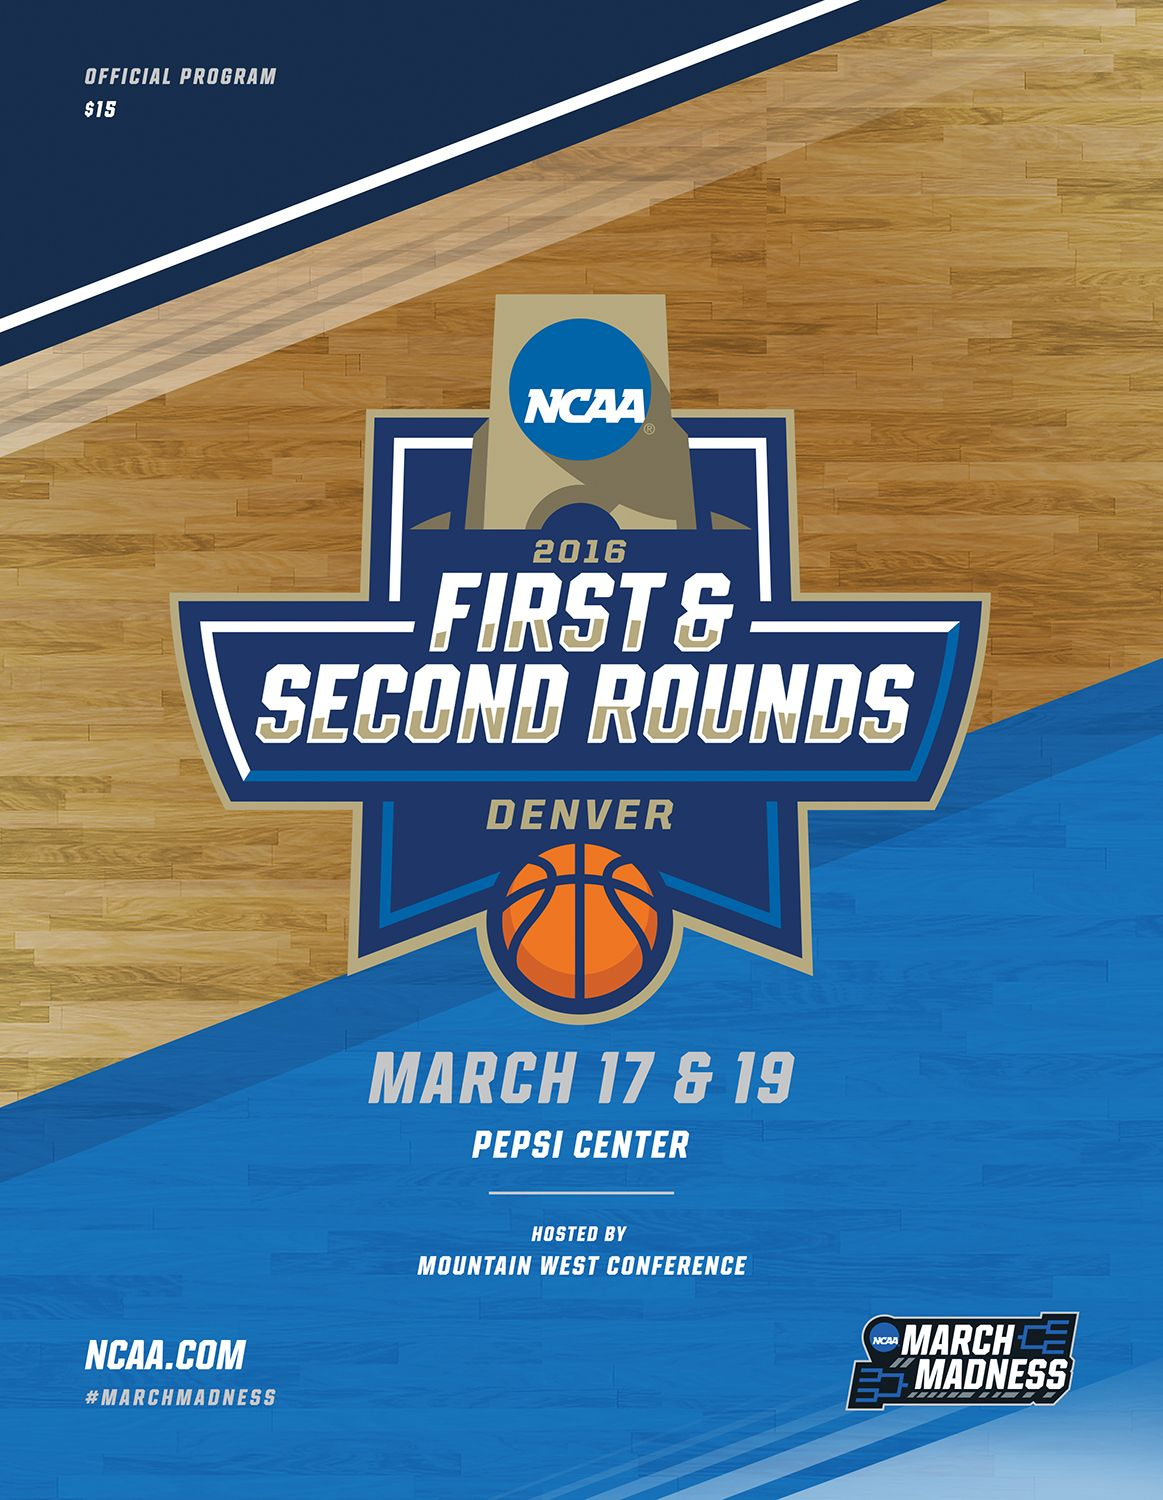 2016 Ncaa Di Men S Basketball 1st 2nd Round Denver Early Rounds Program Which Includes The Following University Of Dayton Ncaa March Madness Xavier Basketball